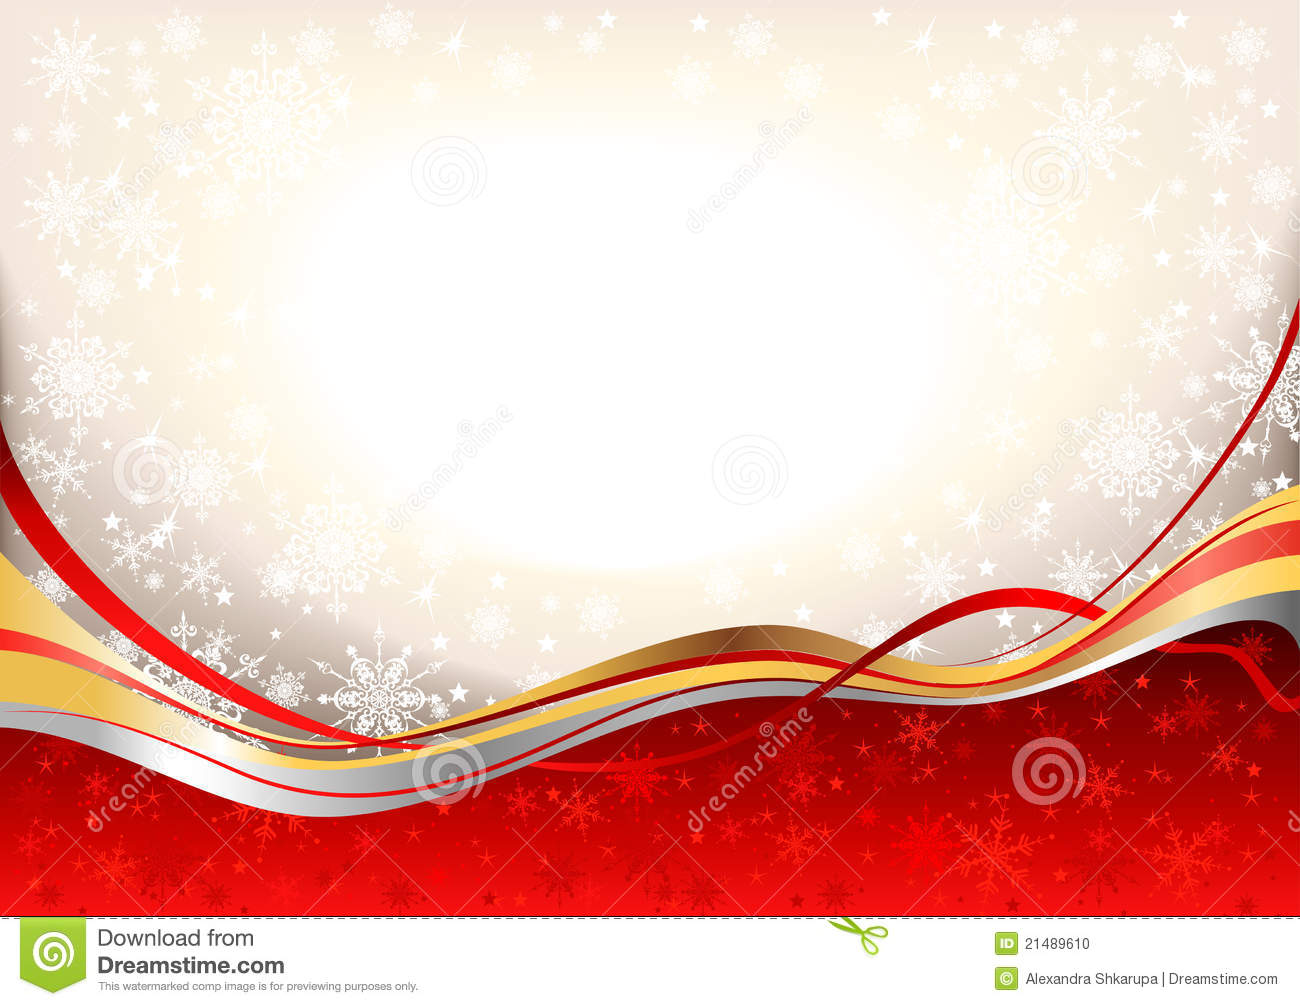 Christmas Festive Background Stock Photo - Image: 21489610